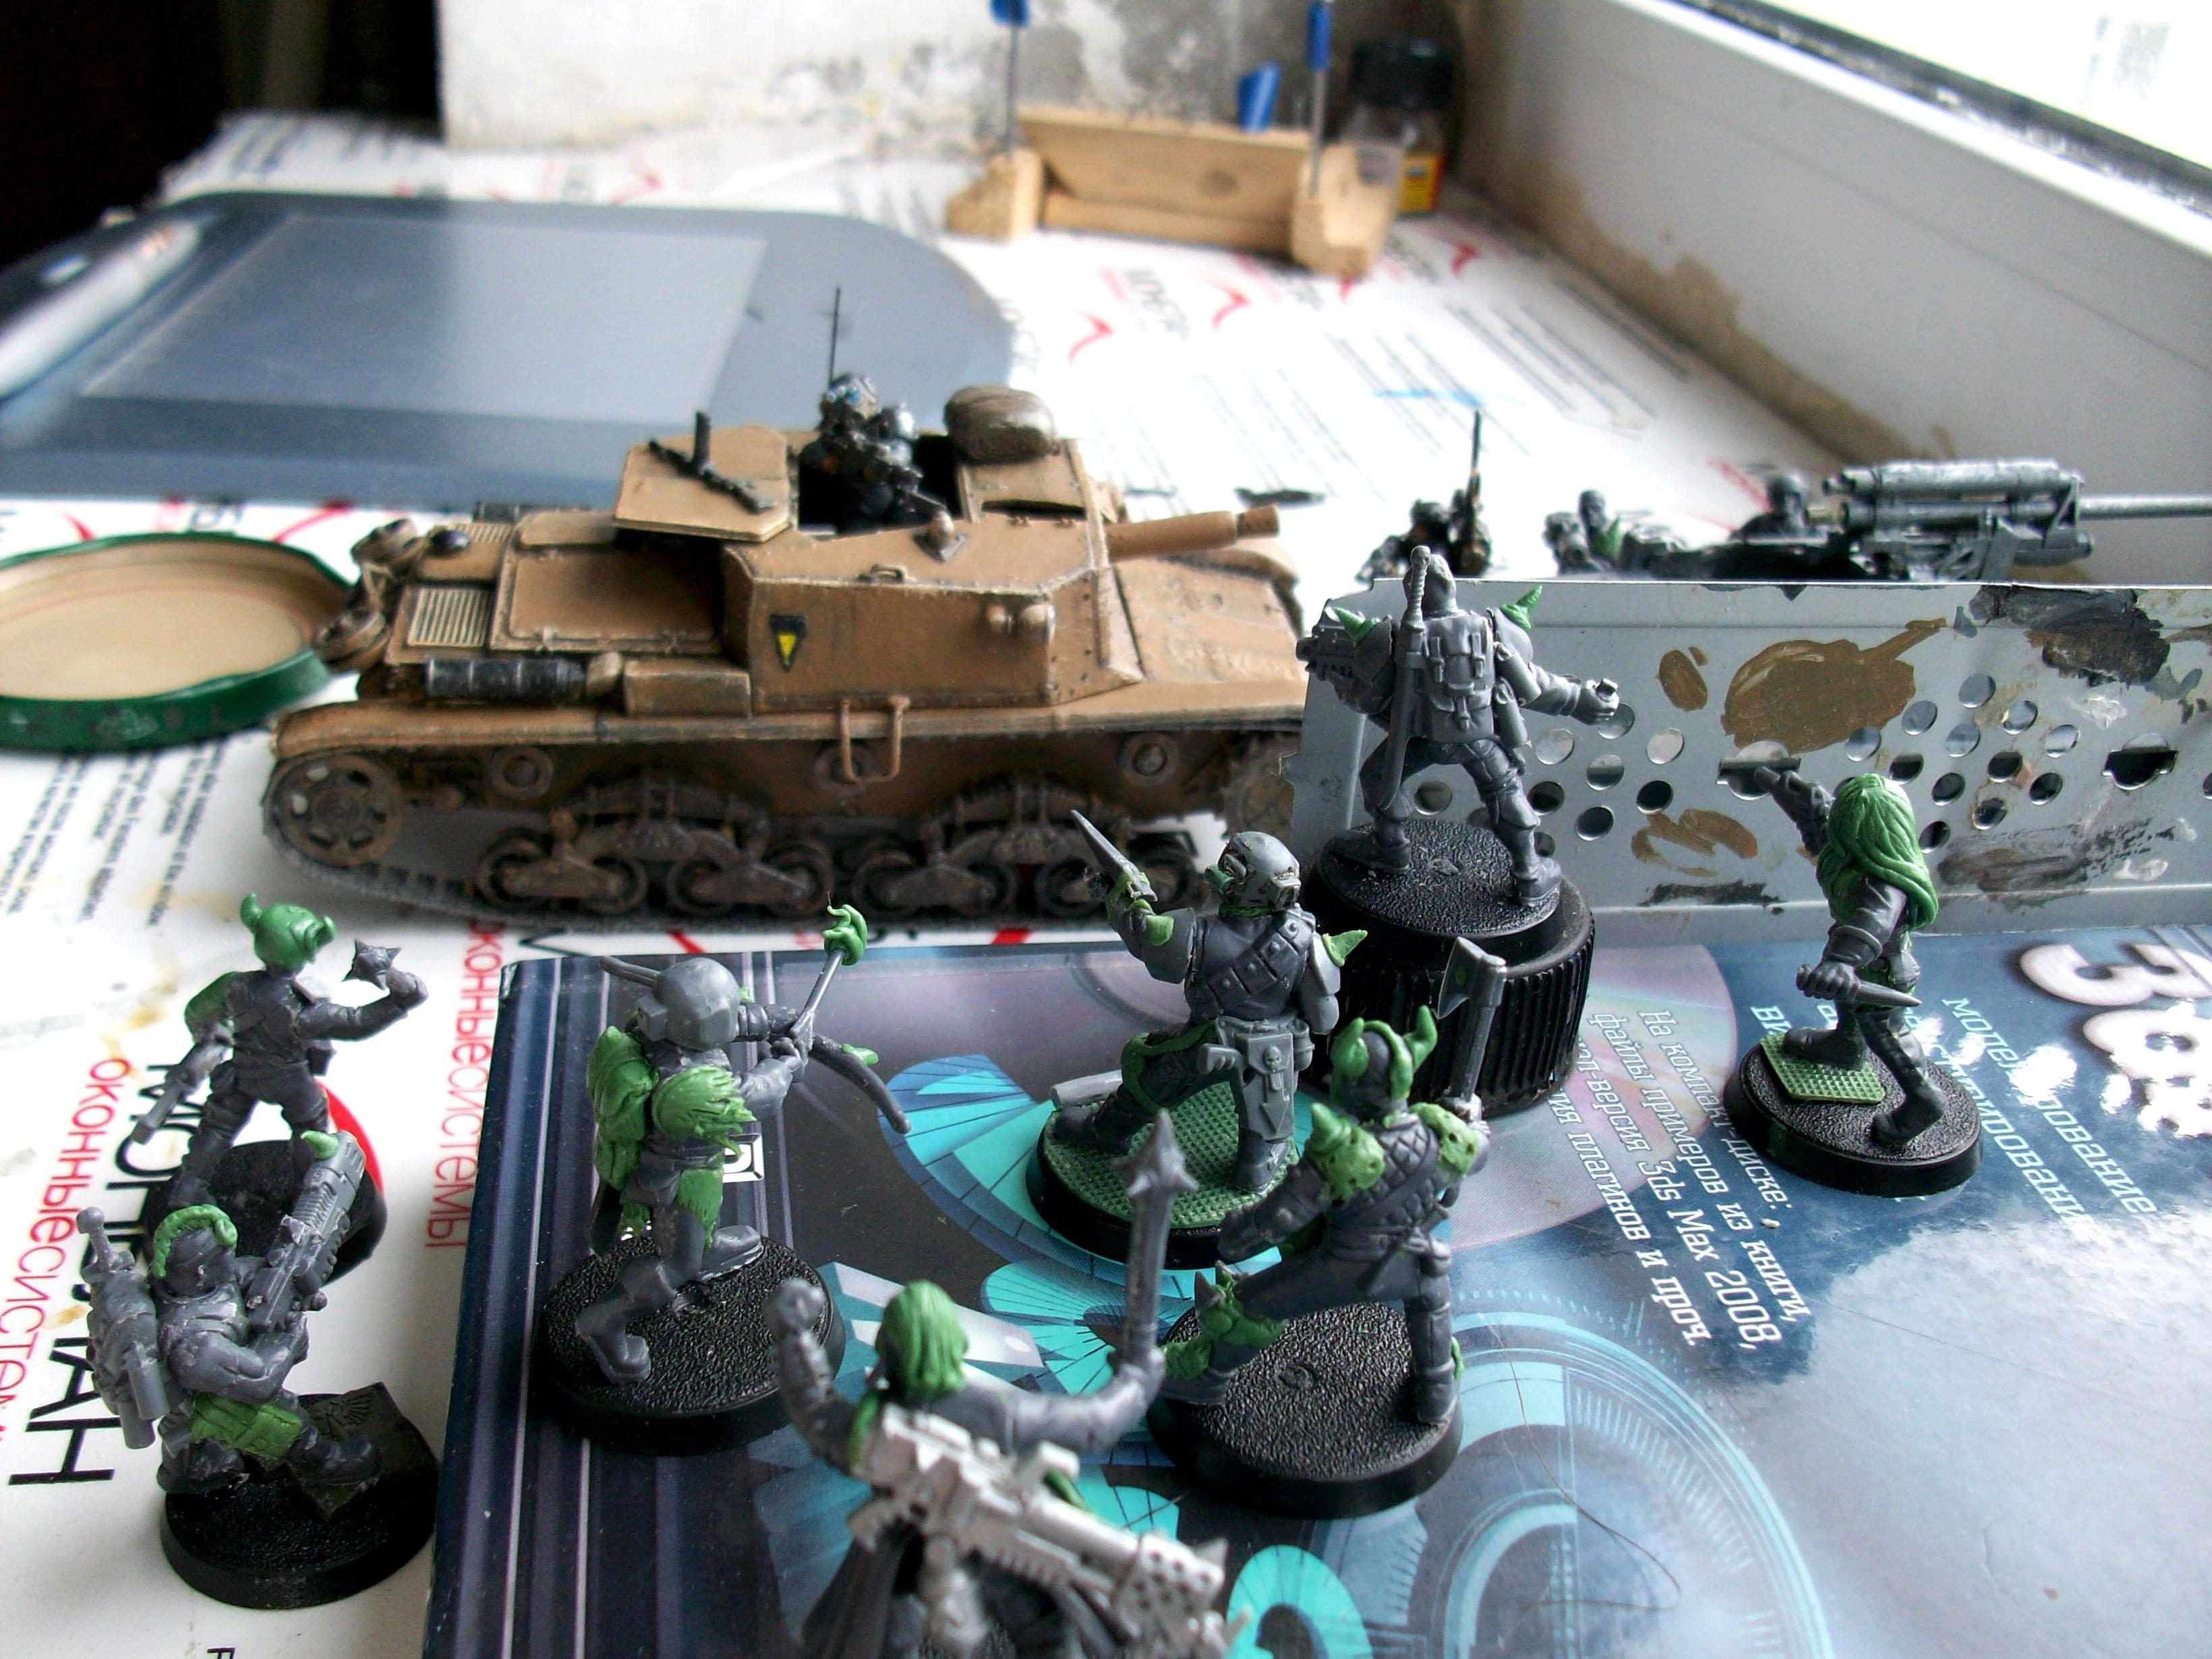 Heretic, Heretics, Imperial Guard, Lost And The Damned, Renegades, Vehicle